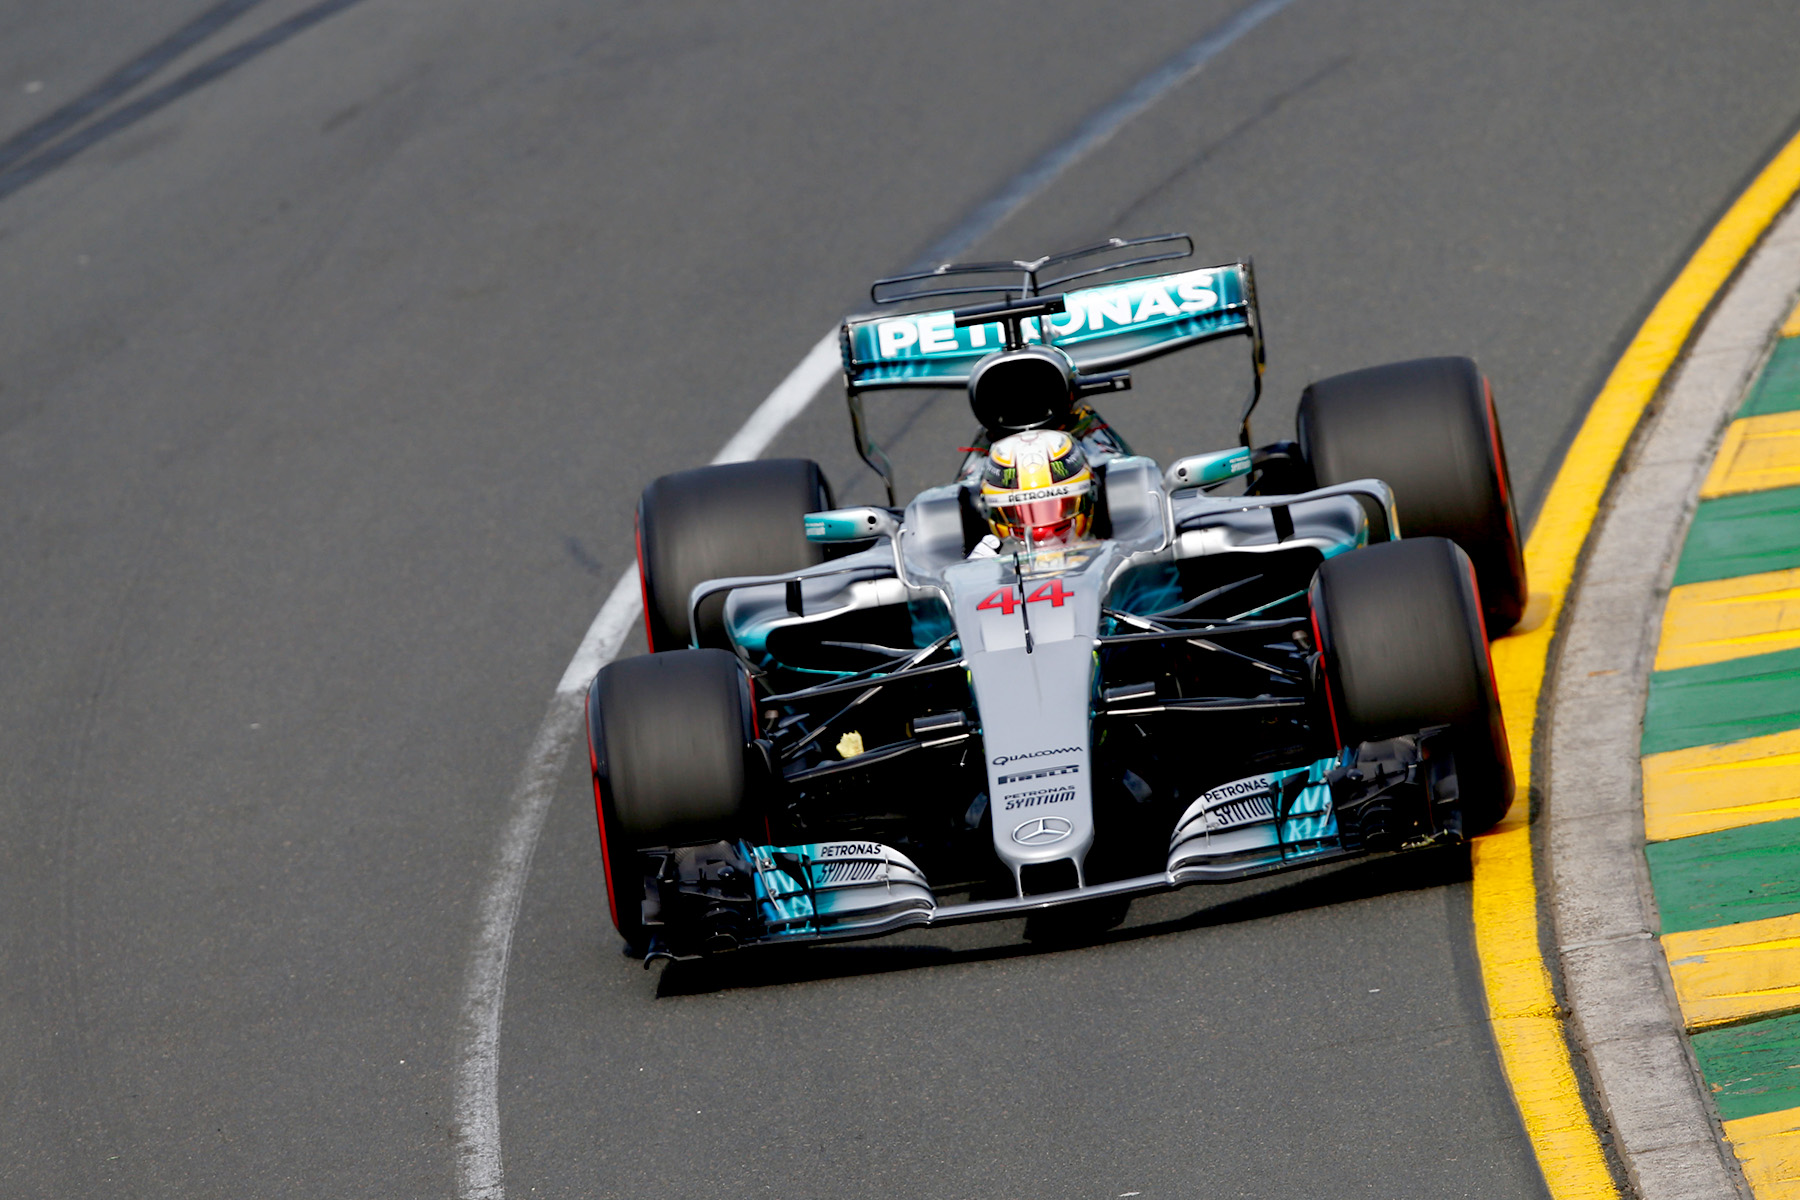 Hamilton leads Vettel on front row after tense Australian qualifying